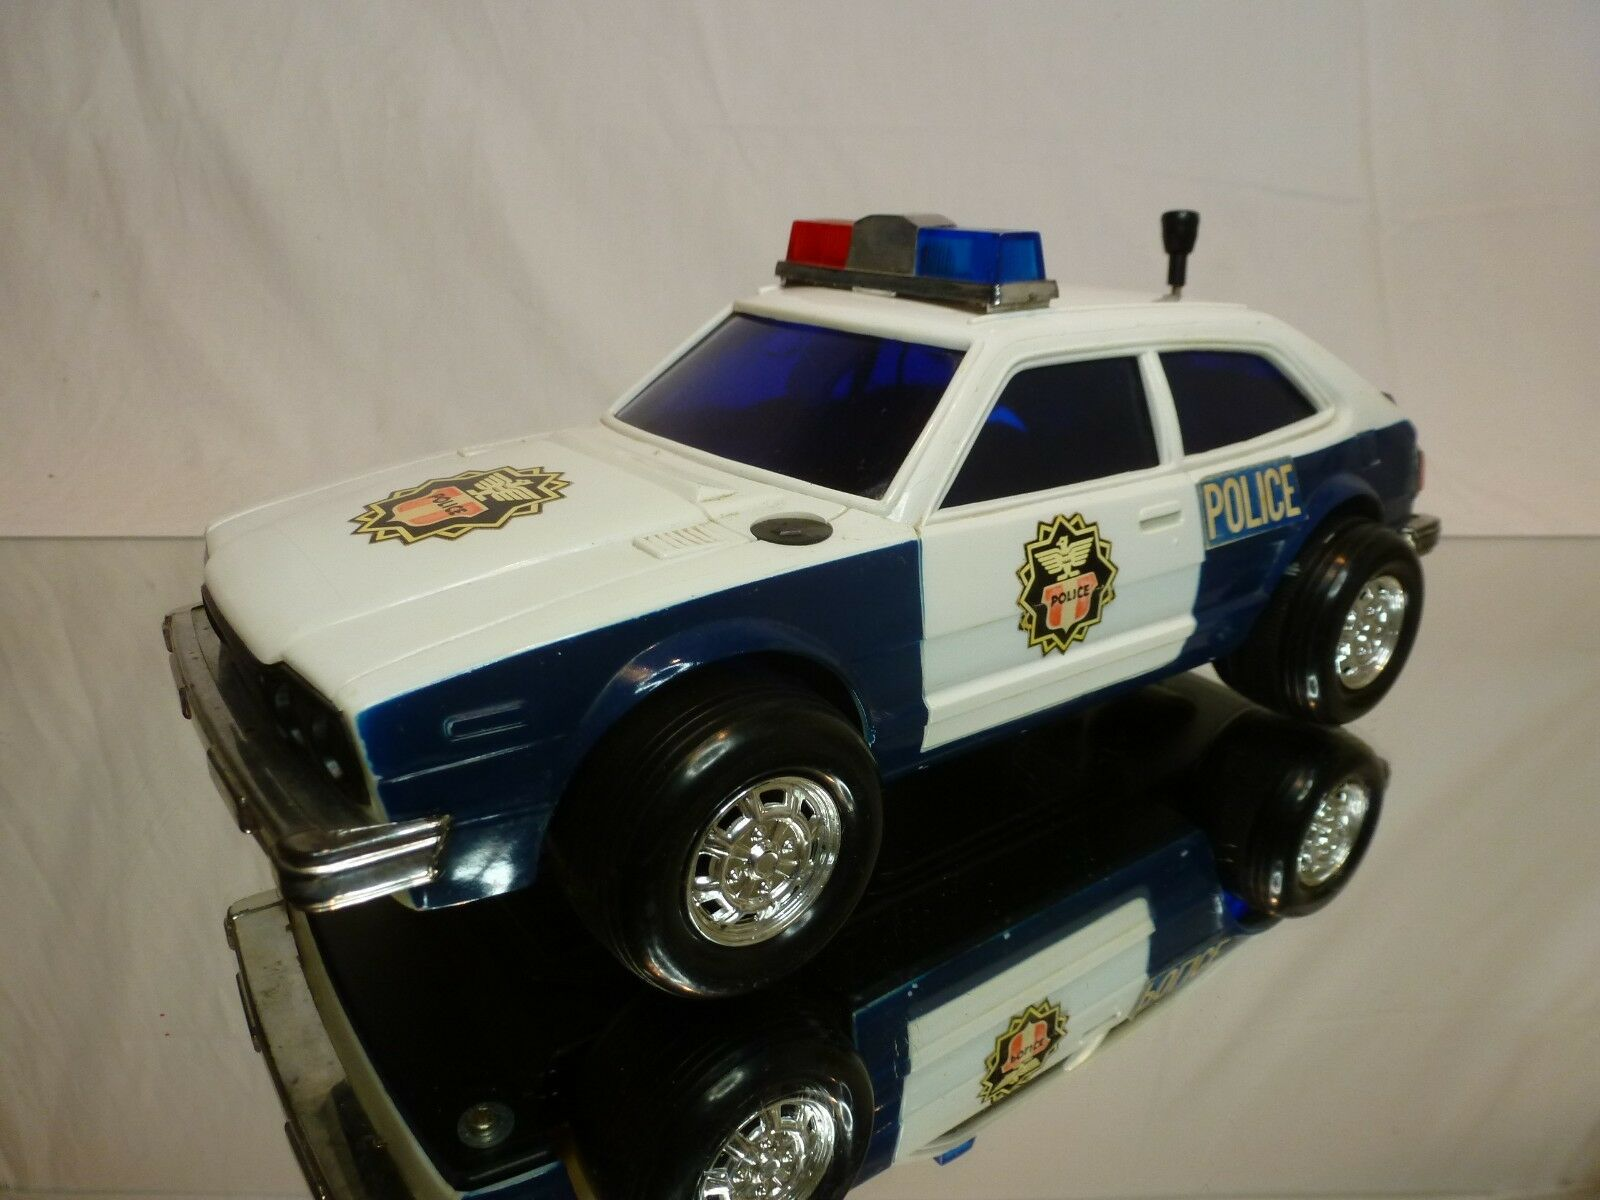 ECHO KONG KONG HONDA ACCORD - POLICE - L27.0cm - GOOD CONDITION - battery